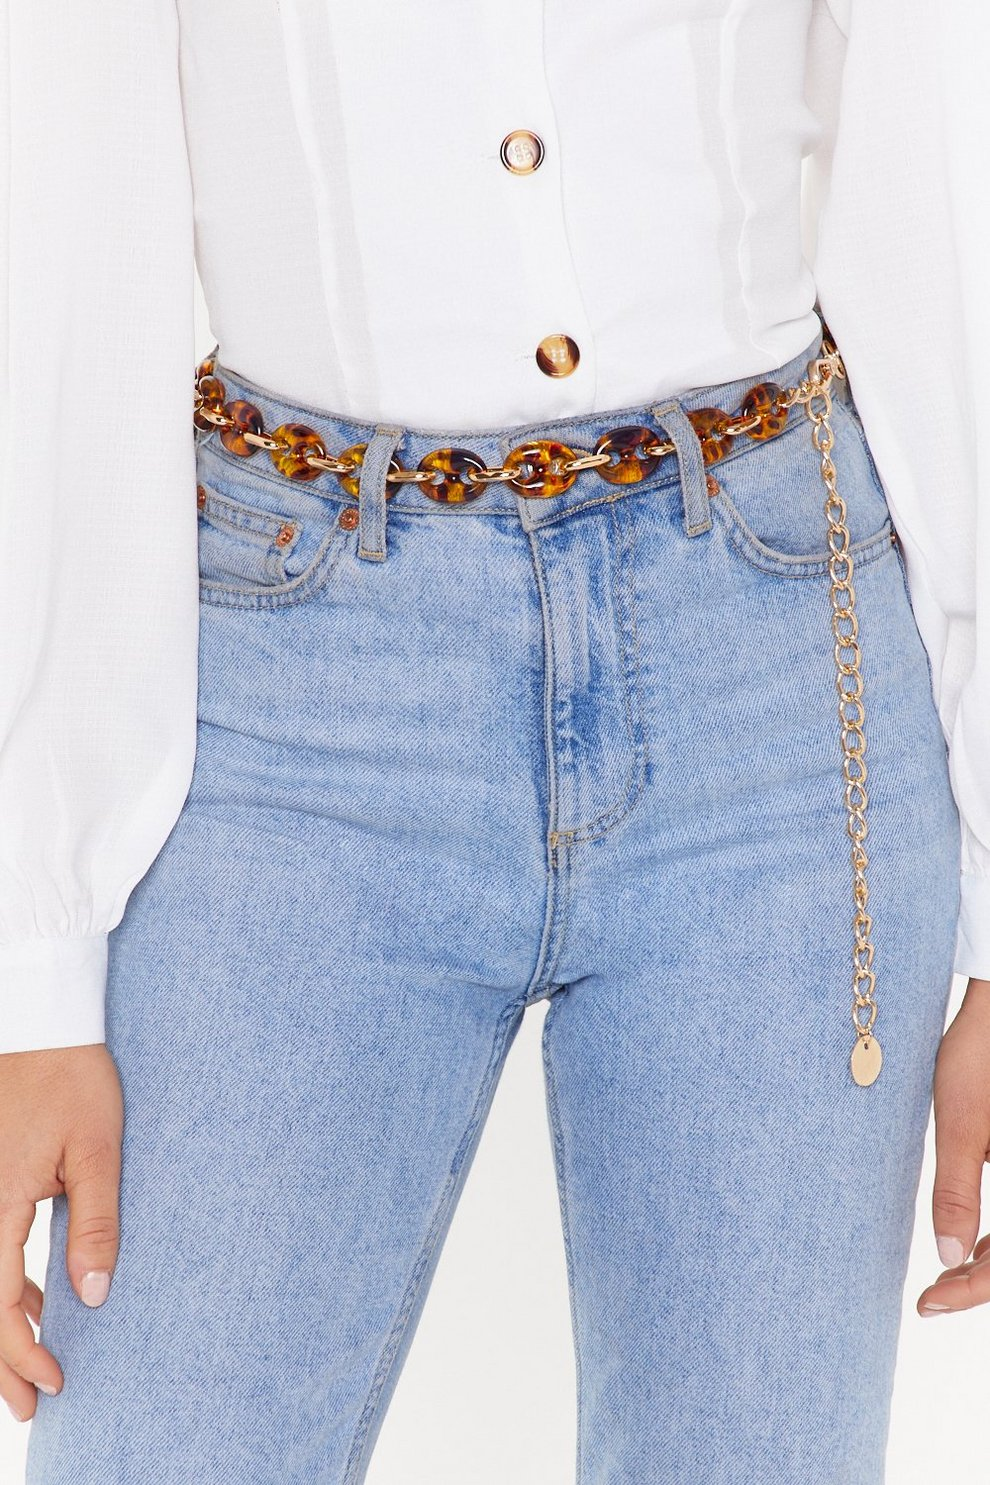 04a1549ee Tort About It Chain Tortioseshell Belt | Shop Clothes at Nasty Gal!